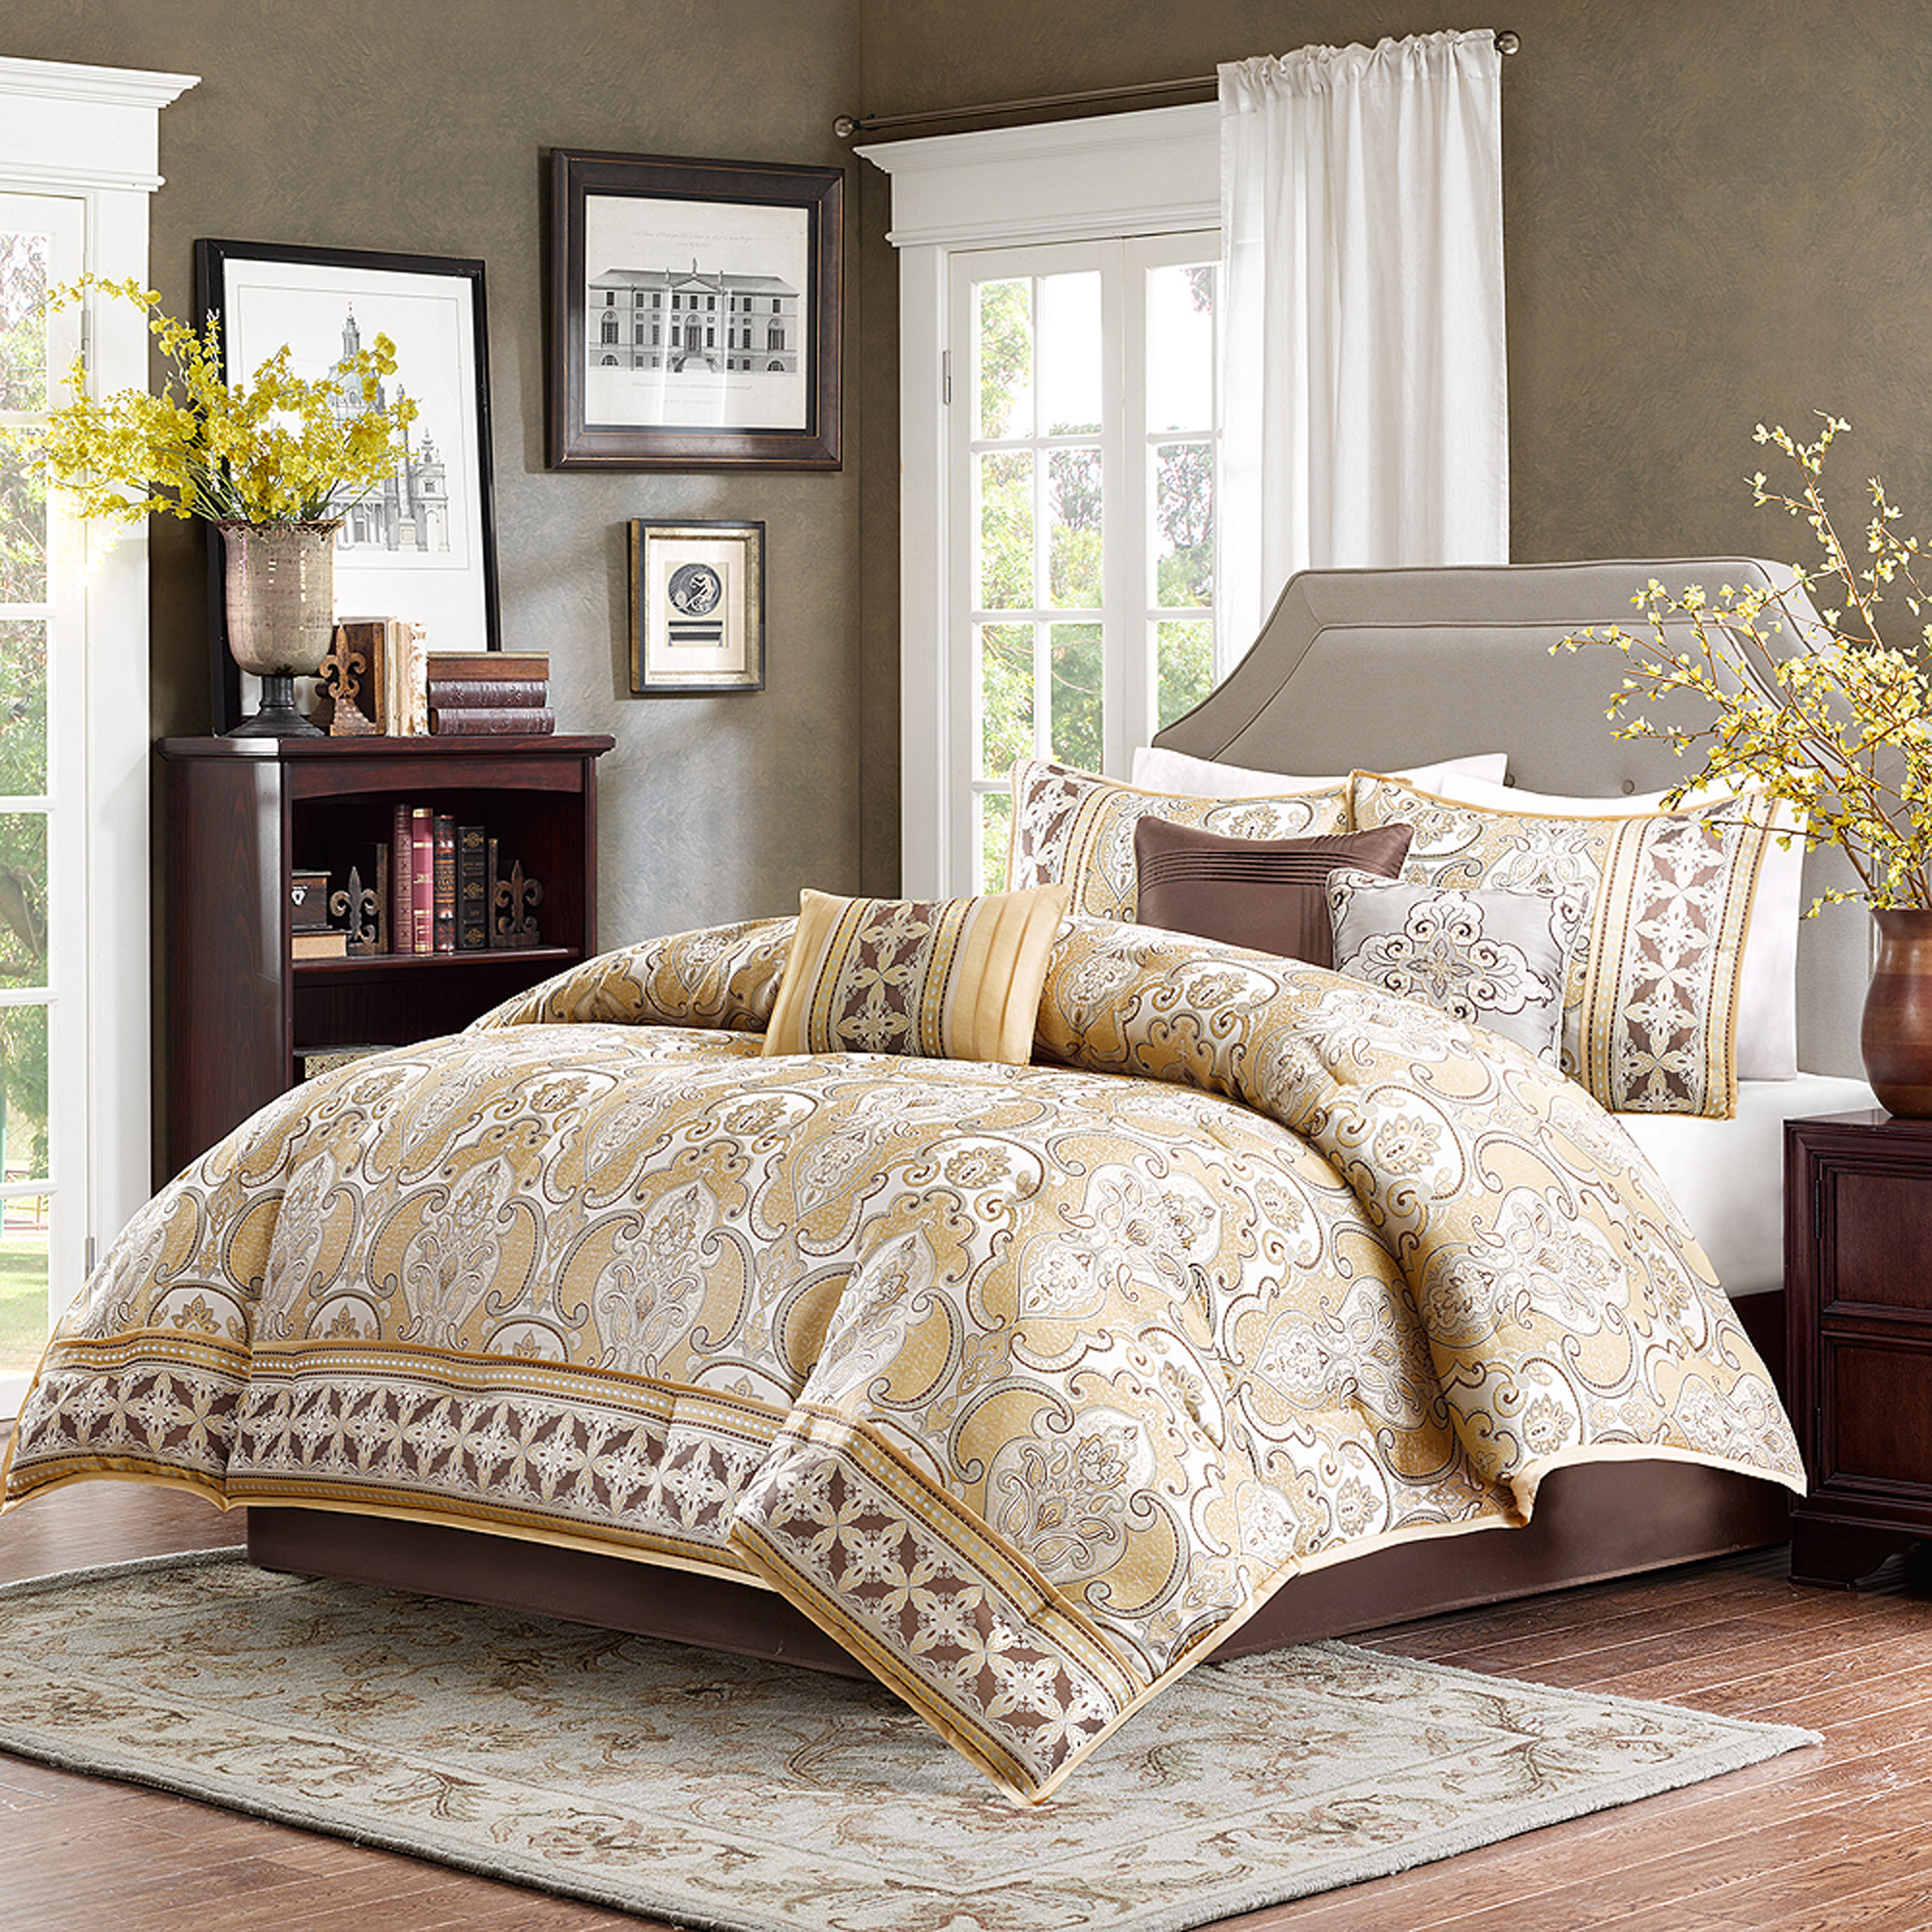 Home Essence Dawson Bedding forter Set Walmart